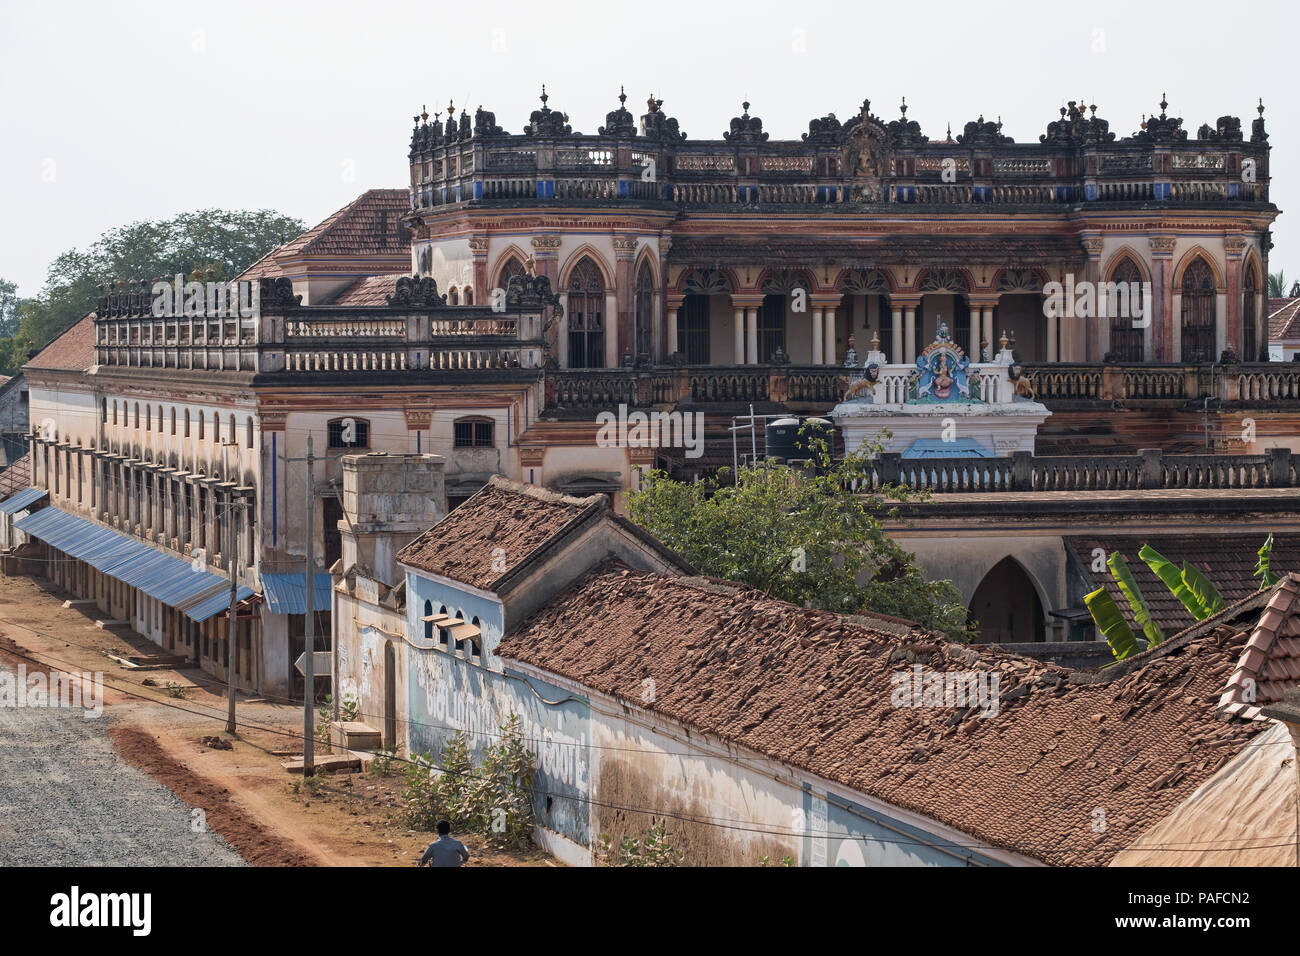 Street view at Kanadukathan in the Chettinad region of Tamil Nadu, India. The area is known for its mansions, many of them now unoccupied - Stock Image